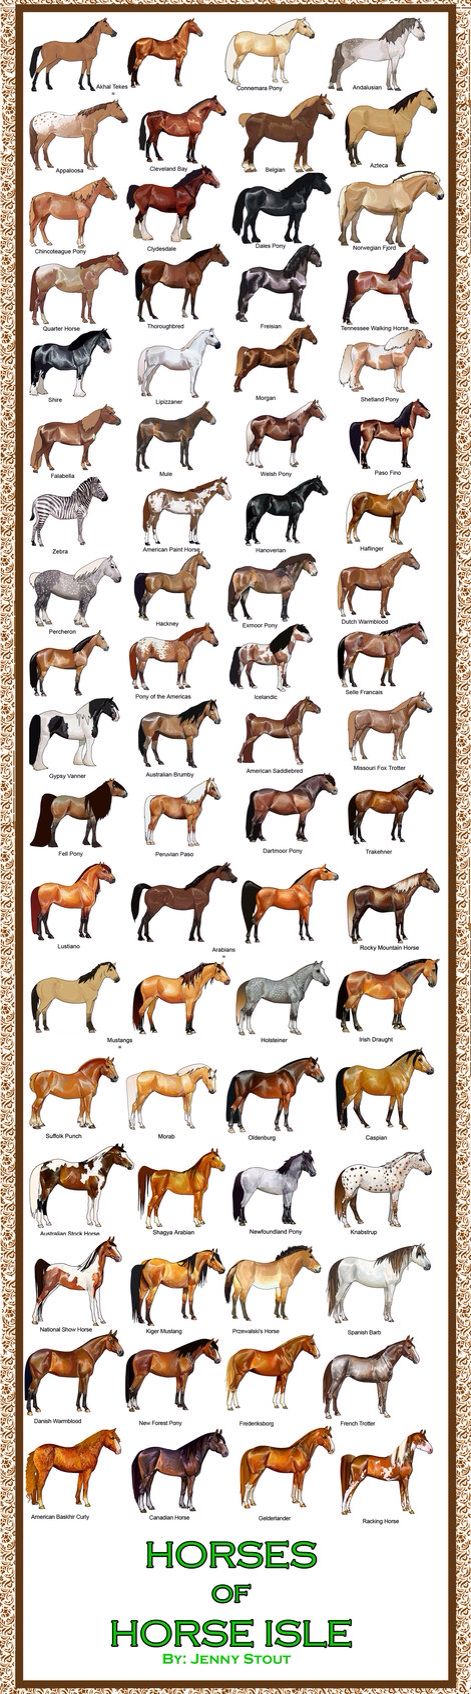 All horses, no matter their breed, are beautiful, to be respected & taken care of;  not abandoned to draft, not to be abused, not slaughtered for their meat!  Act humanely for God's sake!